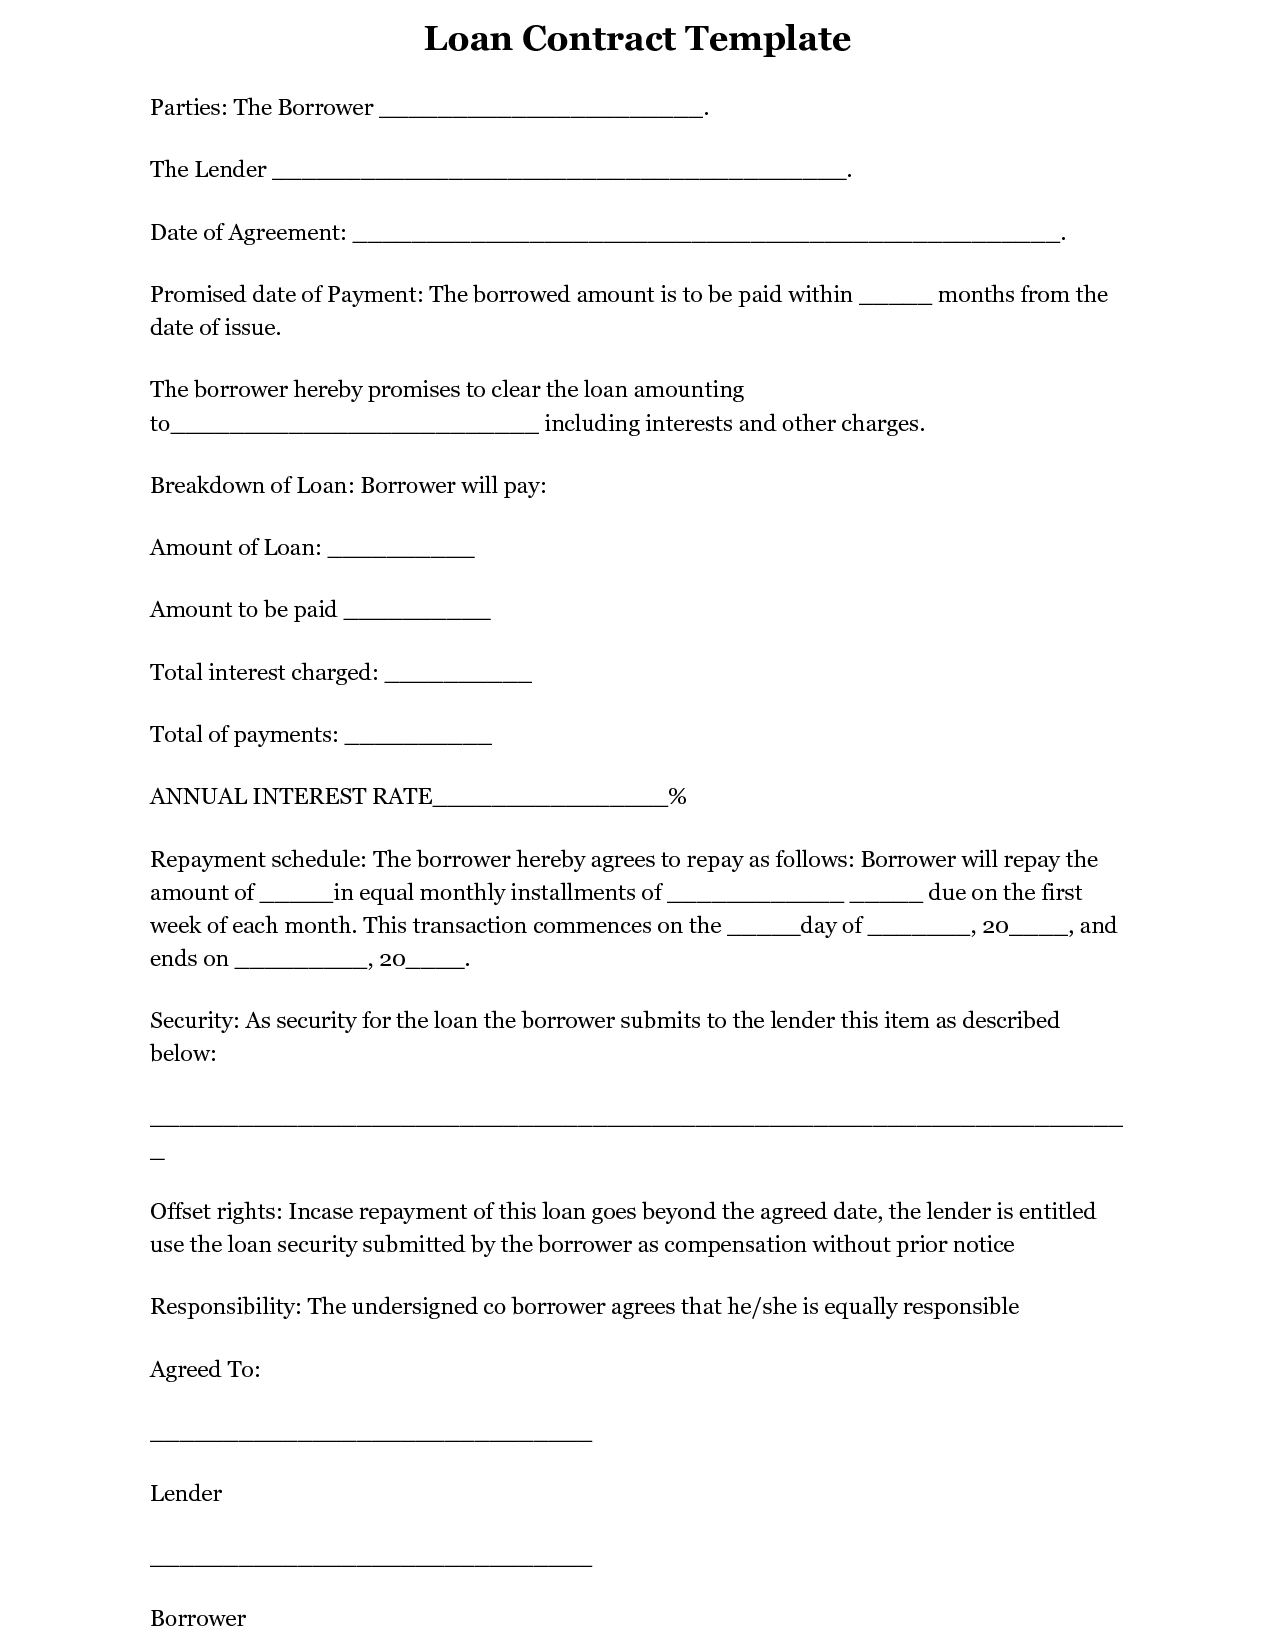 simple interest loan agreement template – Simple Loan Form